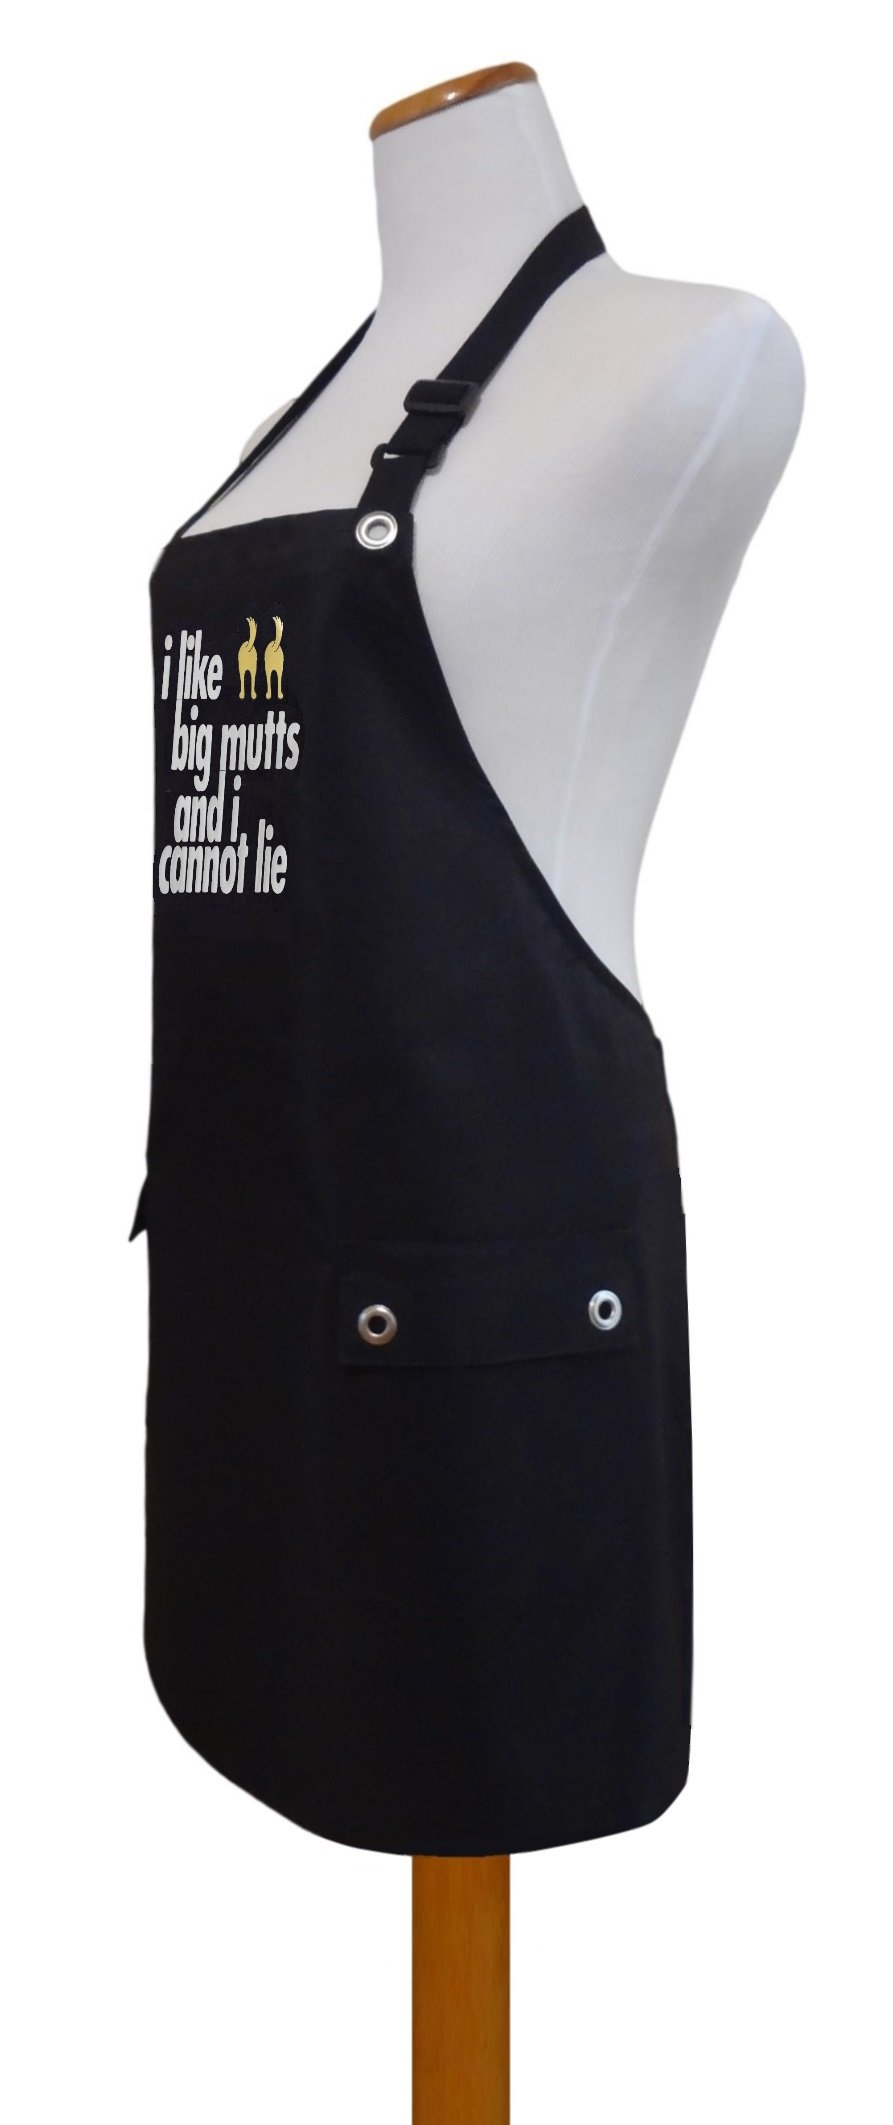 Trendy Salon Aprons Waterproof Pet Dog Groomers Grooming Apron, I Like Big Mutts by Trendy Salon Aprons